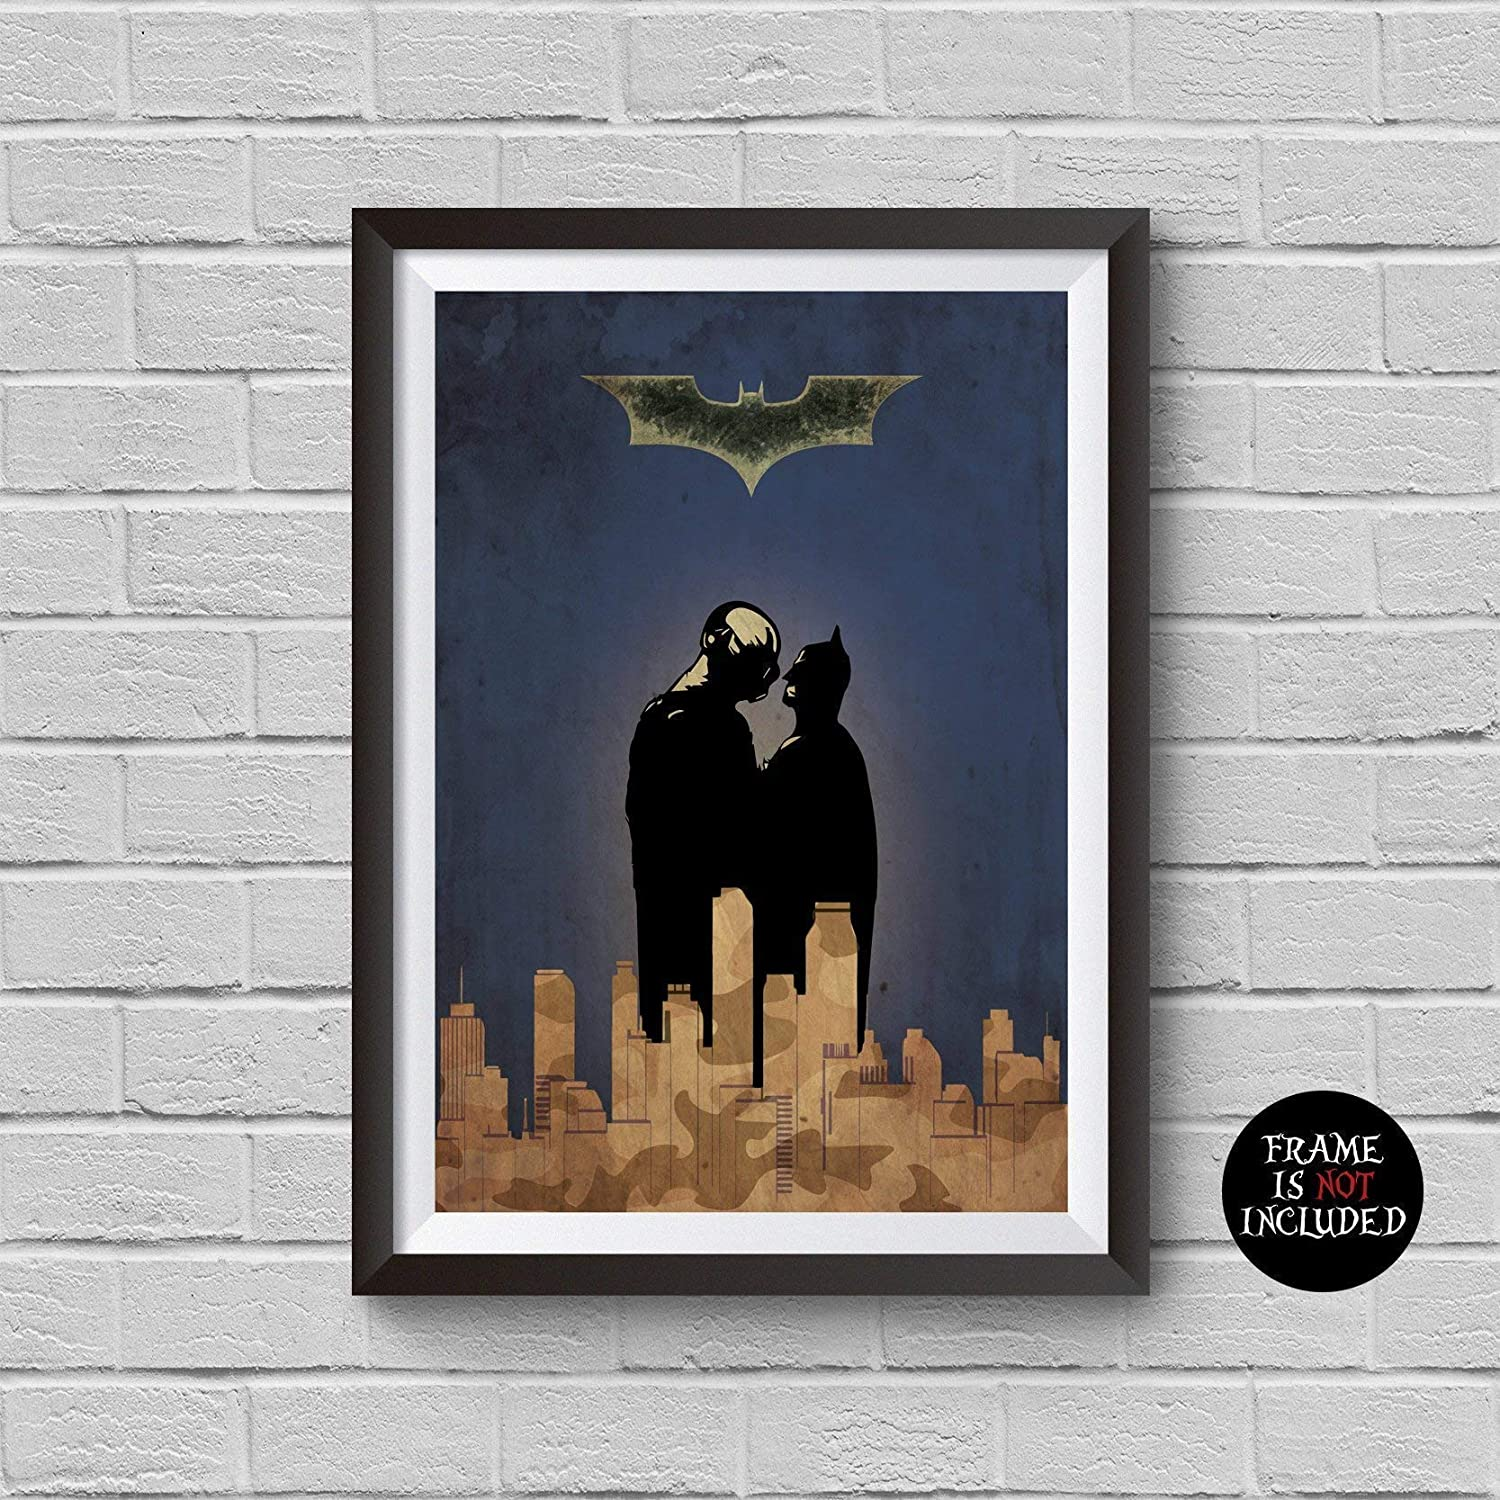 THE DARK KNIGHT BAT MOVIE POSTER FILM A4 A3 ART PRINT CINEMA